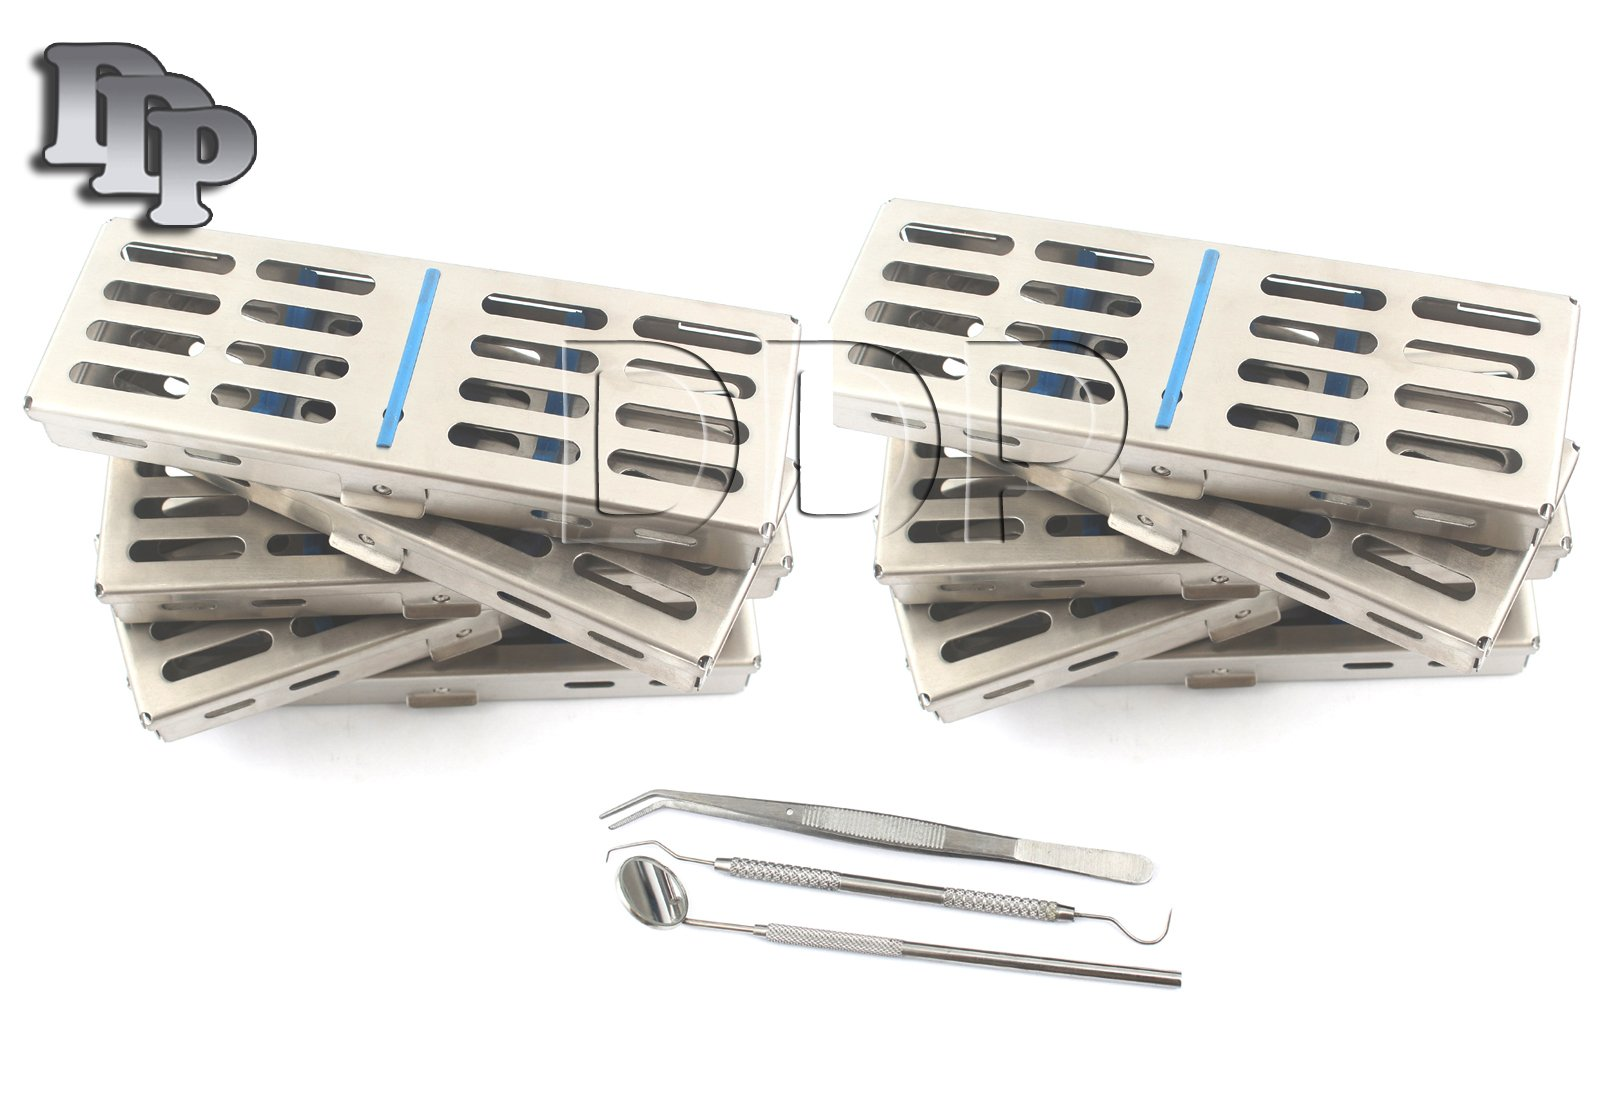 DDP NEW SET OF 10 EACH GERMAN GRADE DENTAL AUTOCLAVE STERILIZATION CASSETTE RACK BOX TRAY FOR 5 INSTRUMENT+3 PIECE DENTAL SET FREE